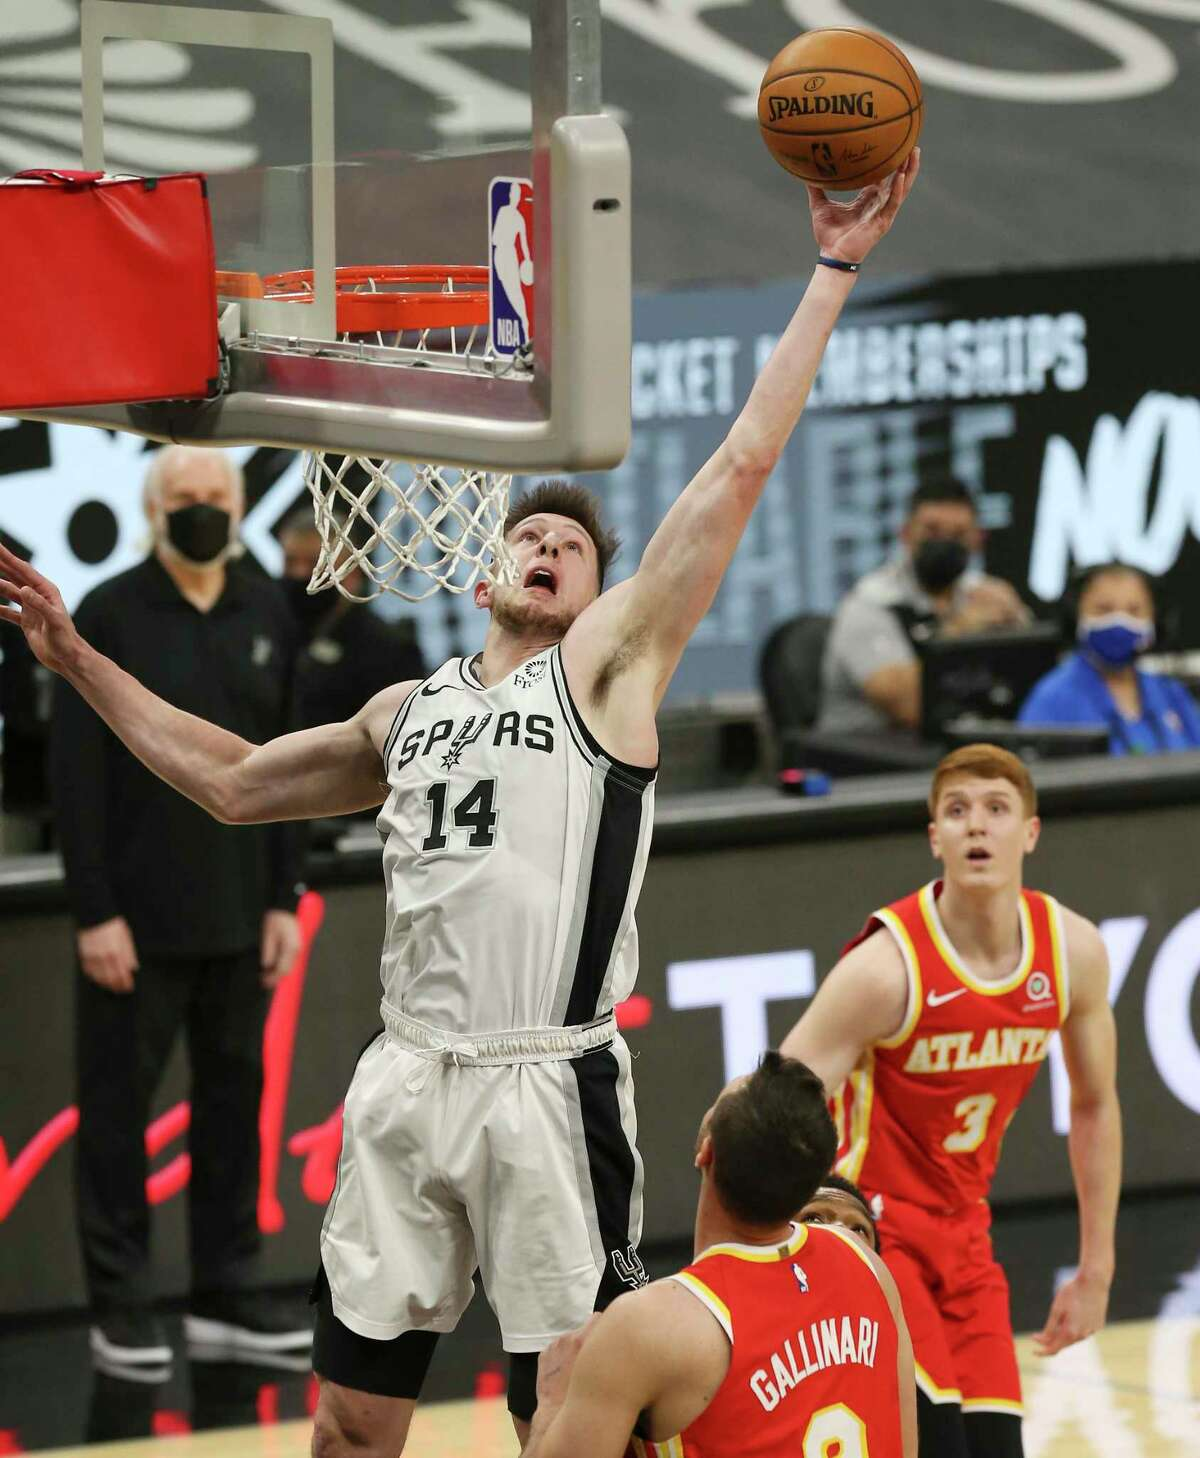 Spurs' Drew Eubanks (14) attempts to put back a shot against Atlanta Hawks' Danilo Gallinari (08) during their game at the AT&T Center on Thursday, Apr. 1, 2021.